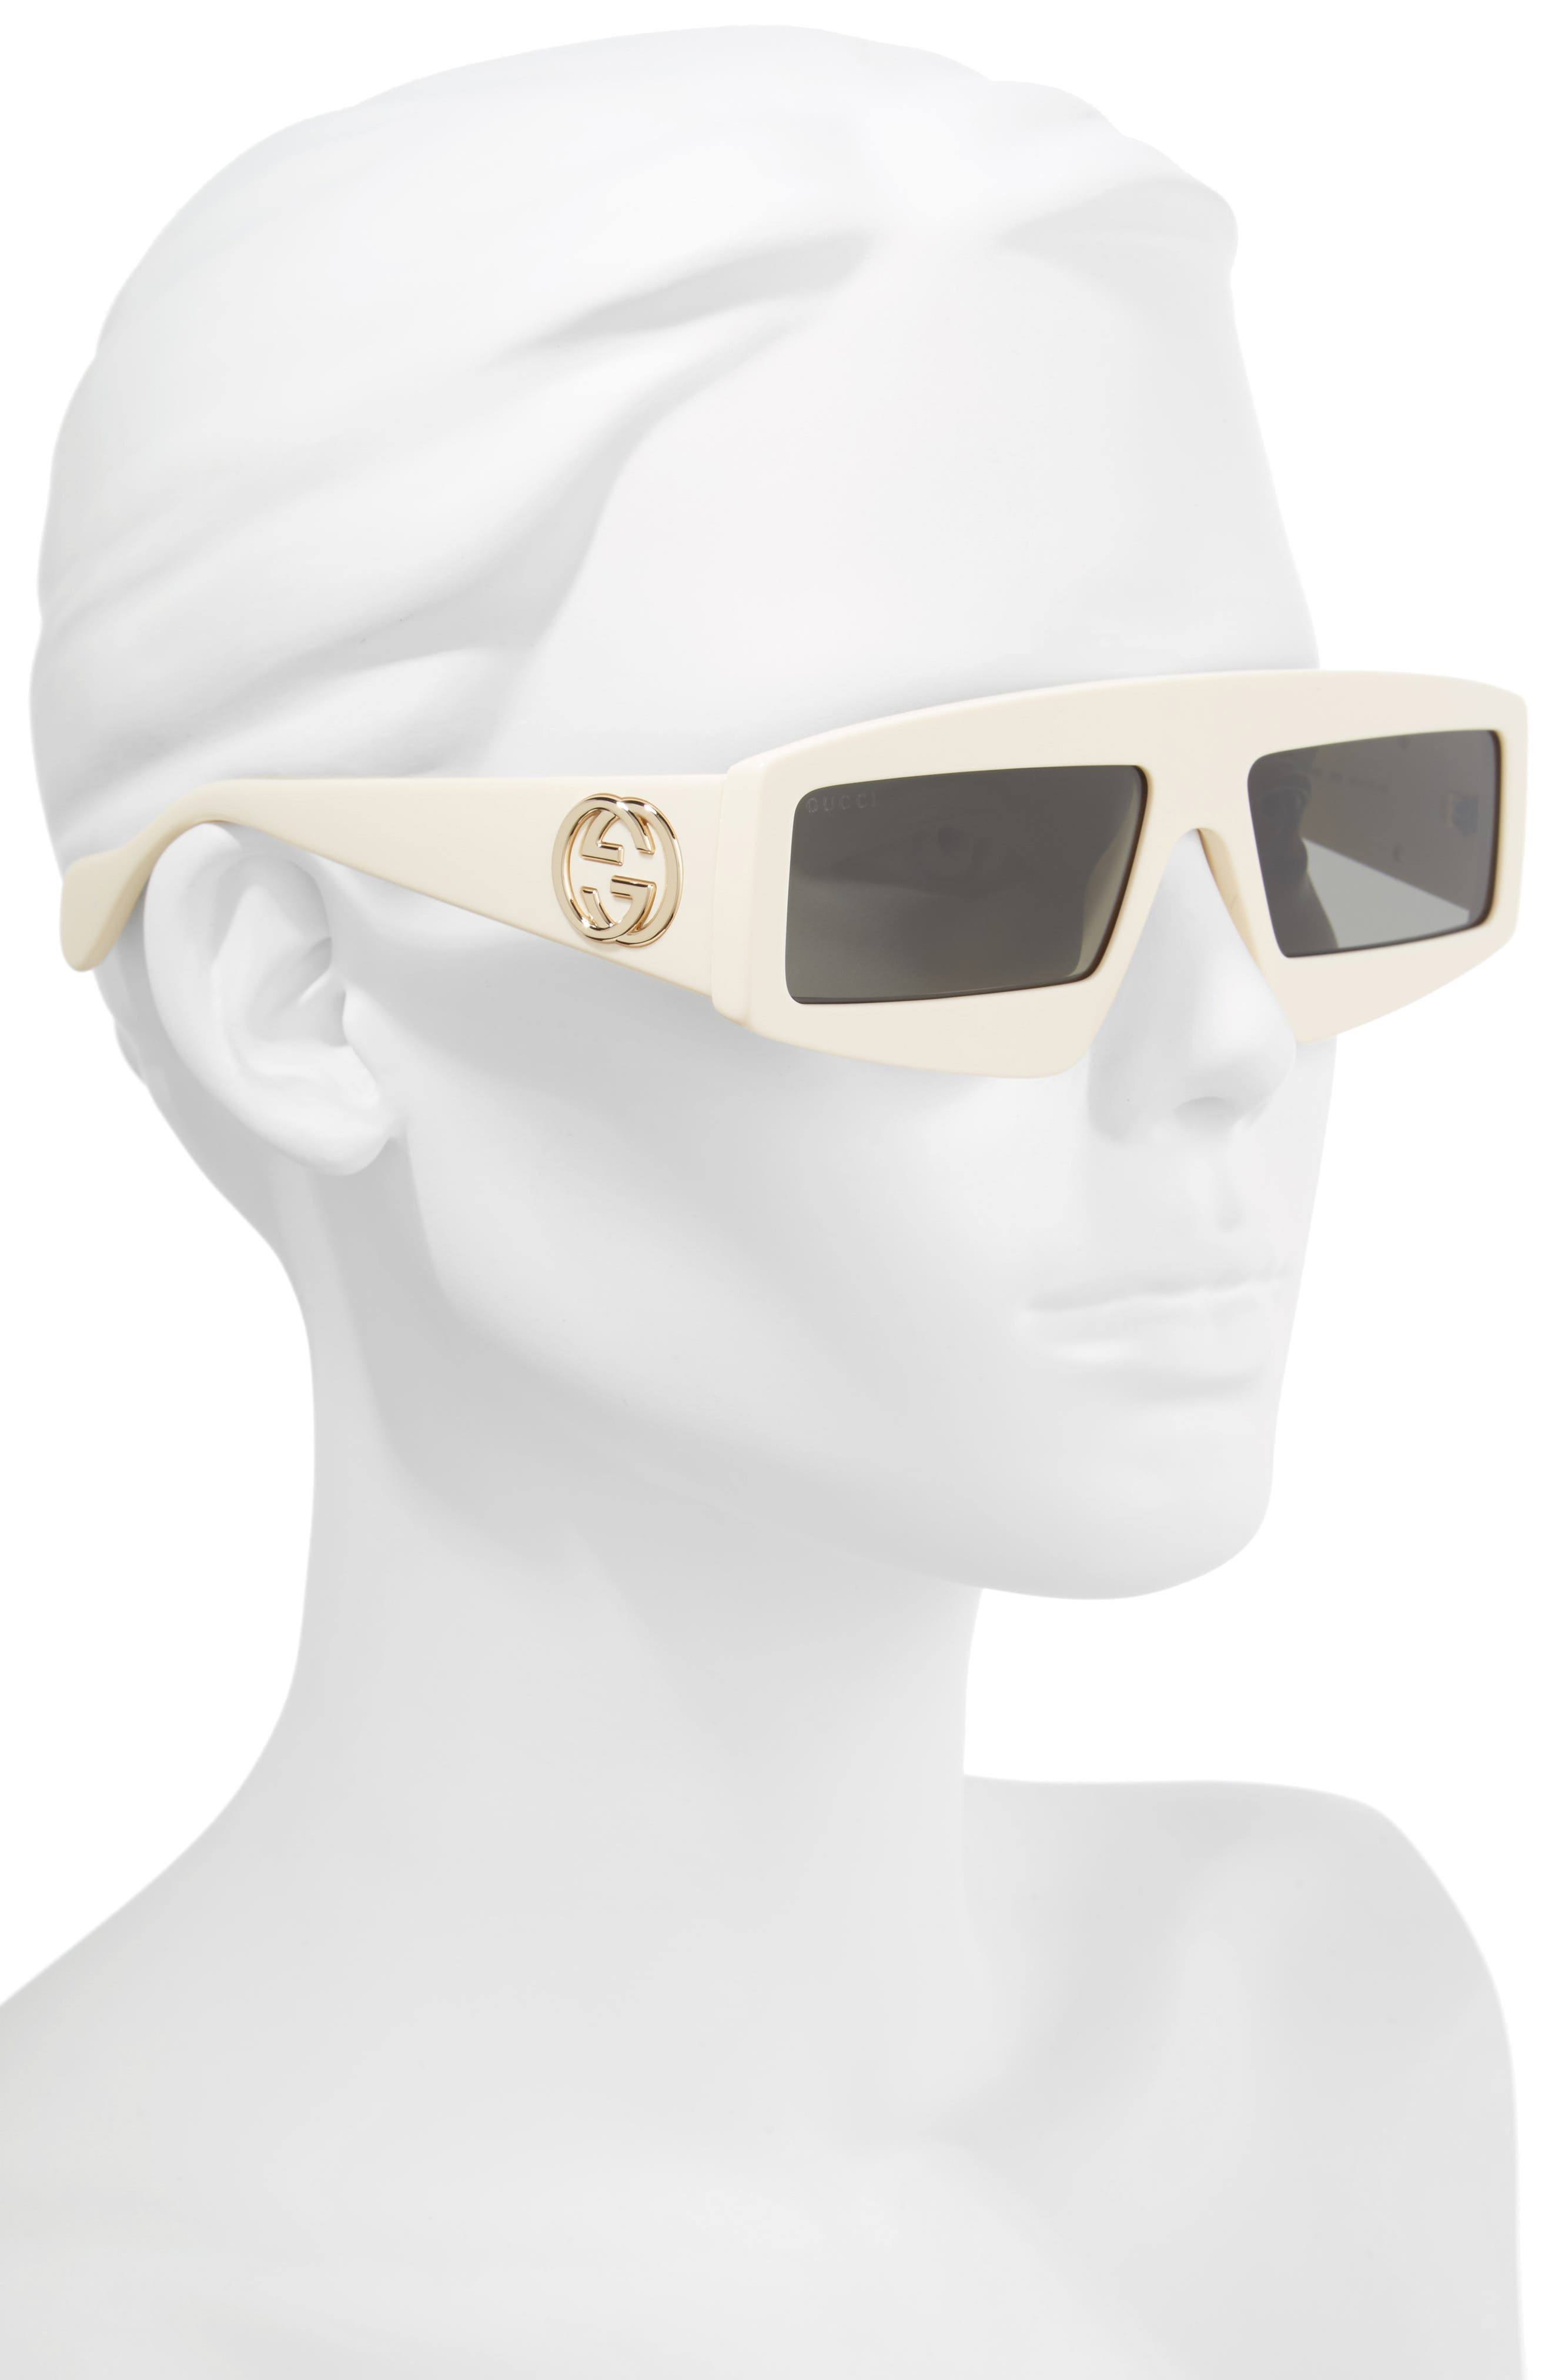 61mm Shield Sunglasses,                             Alternate thumbnail 2, color,                             IVORY